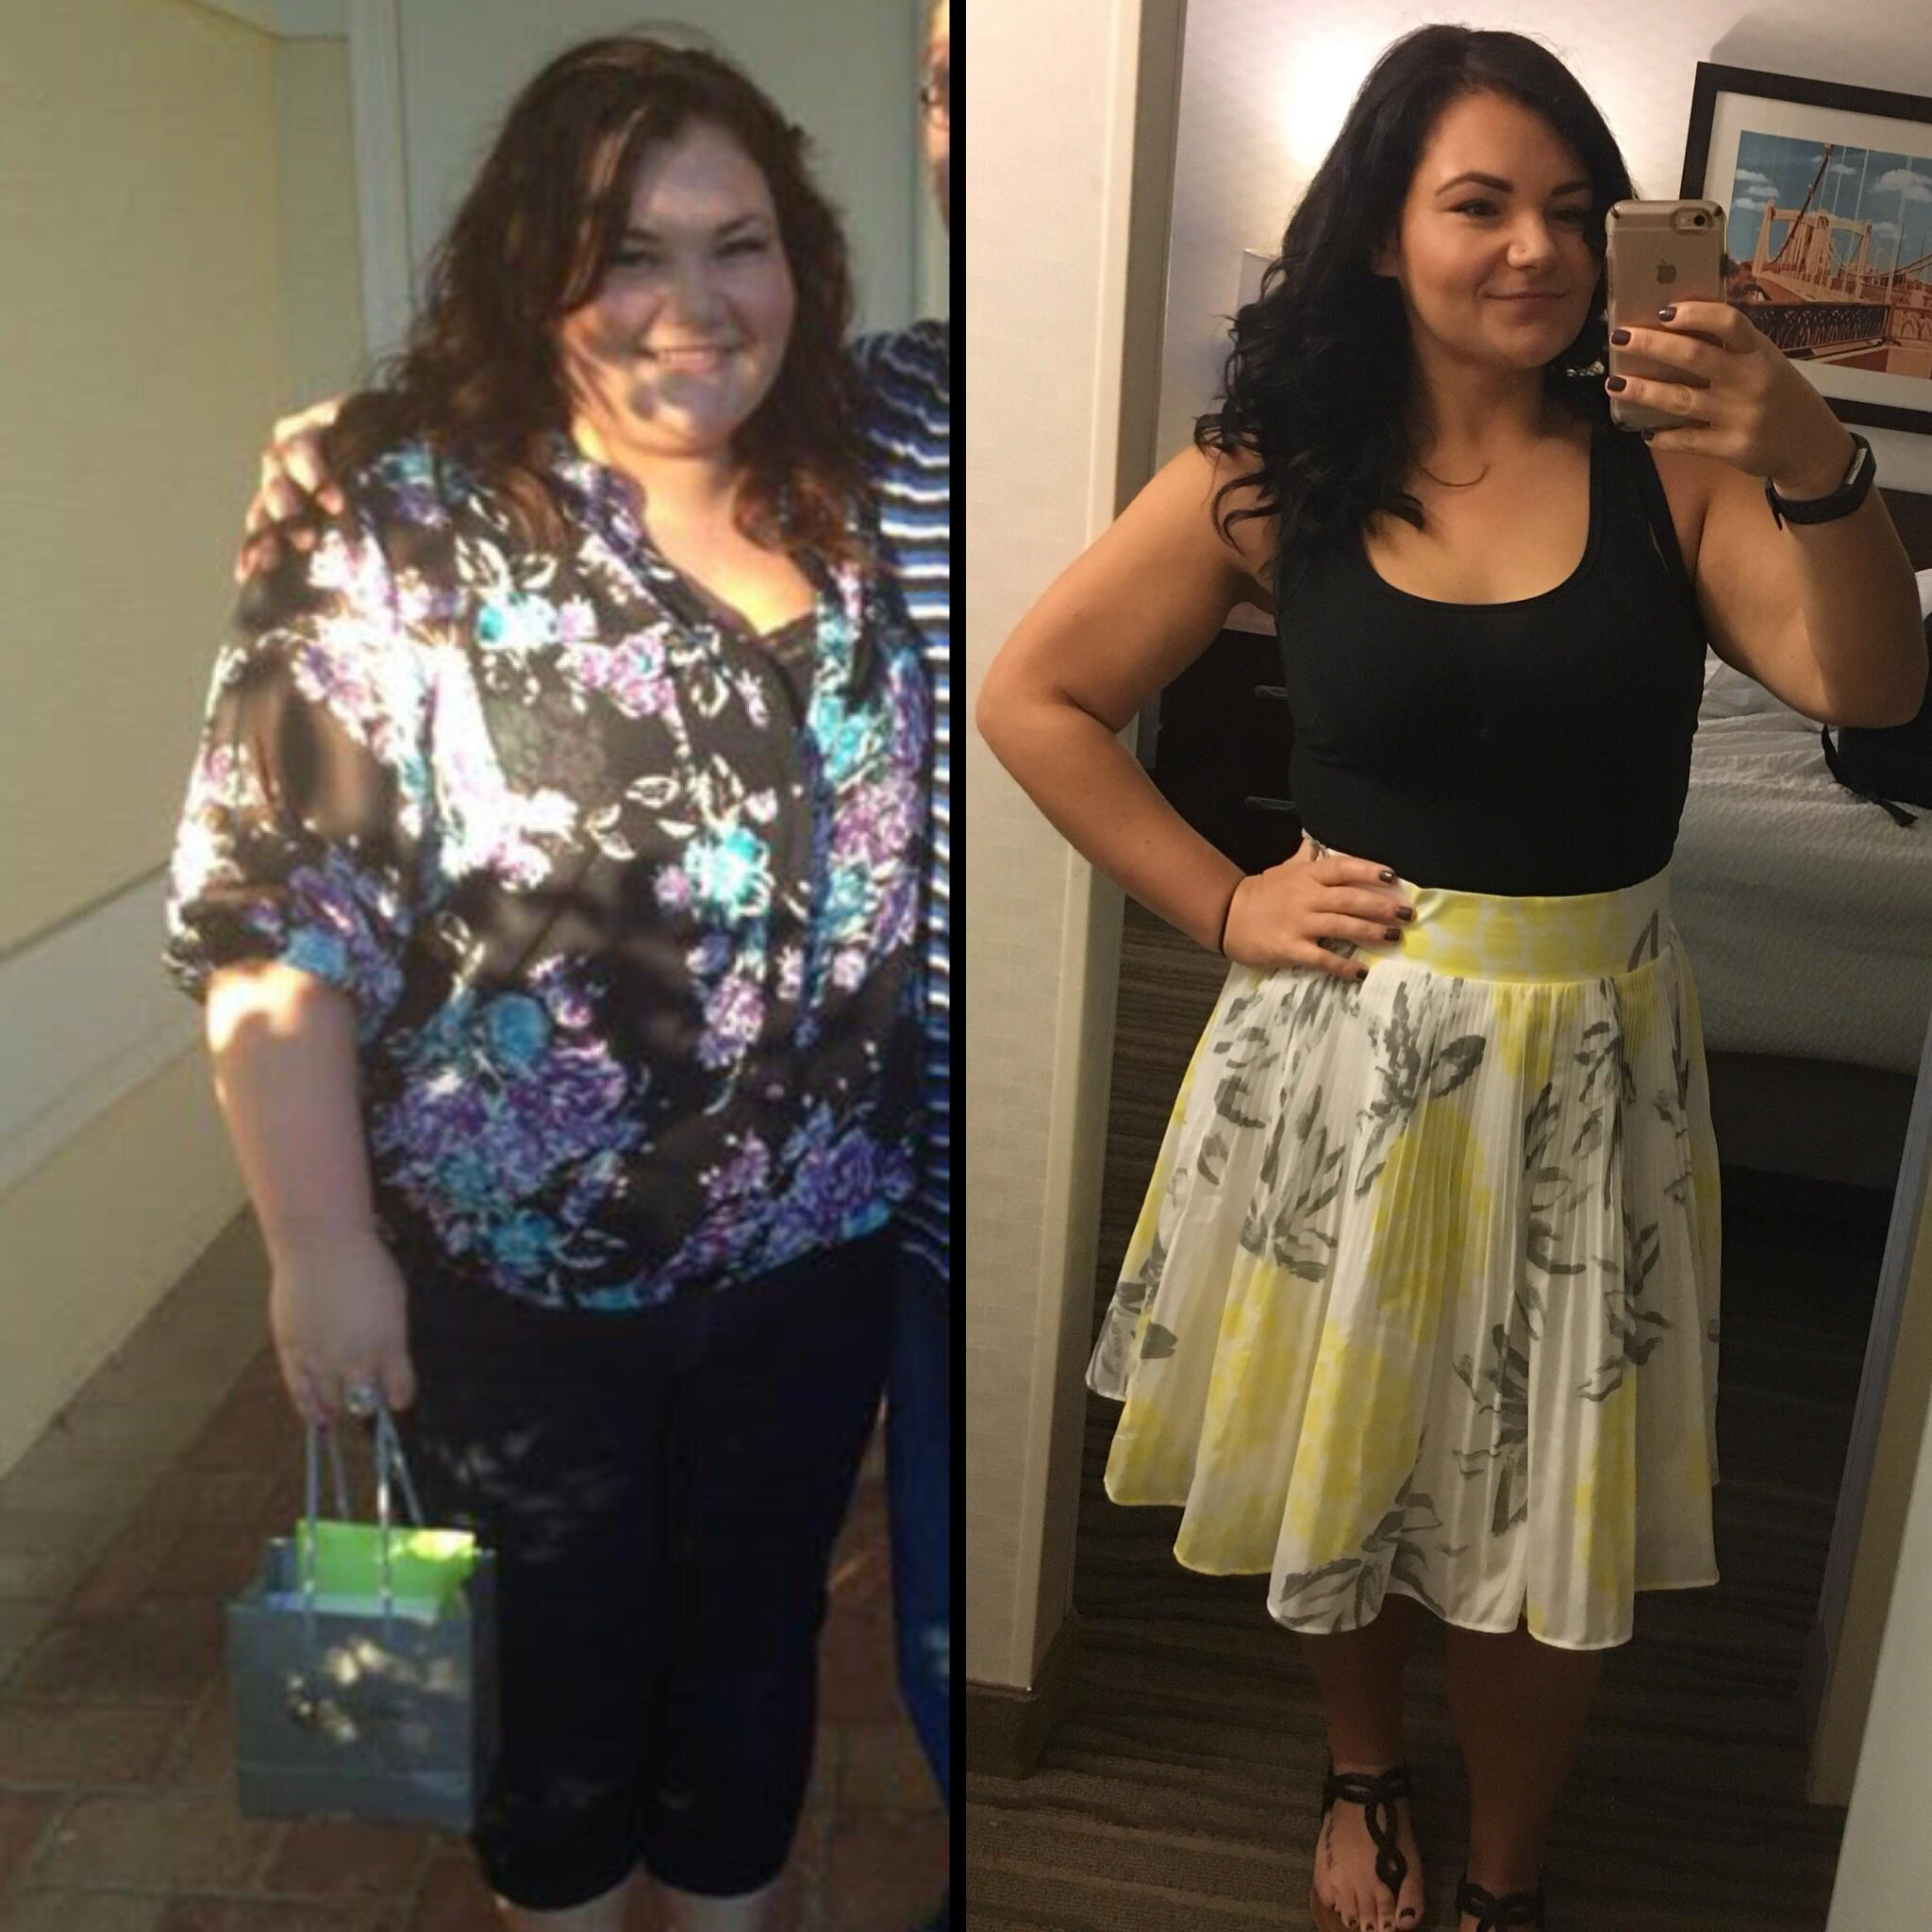 90 lbs Weight Loss Before and After 5 foot 2 Female 260 lbs to 170 lbs